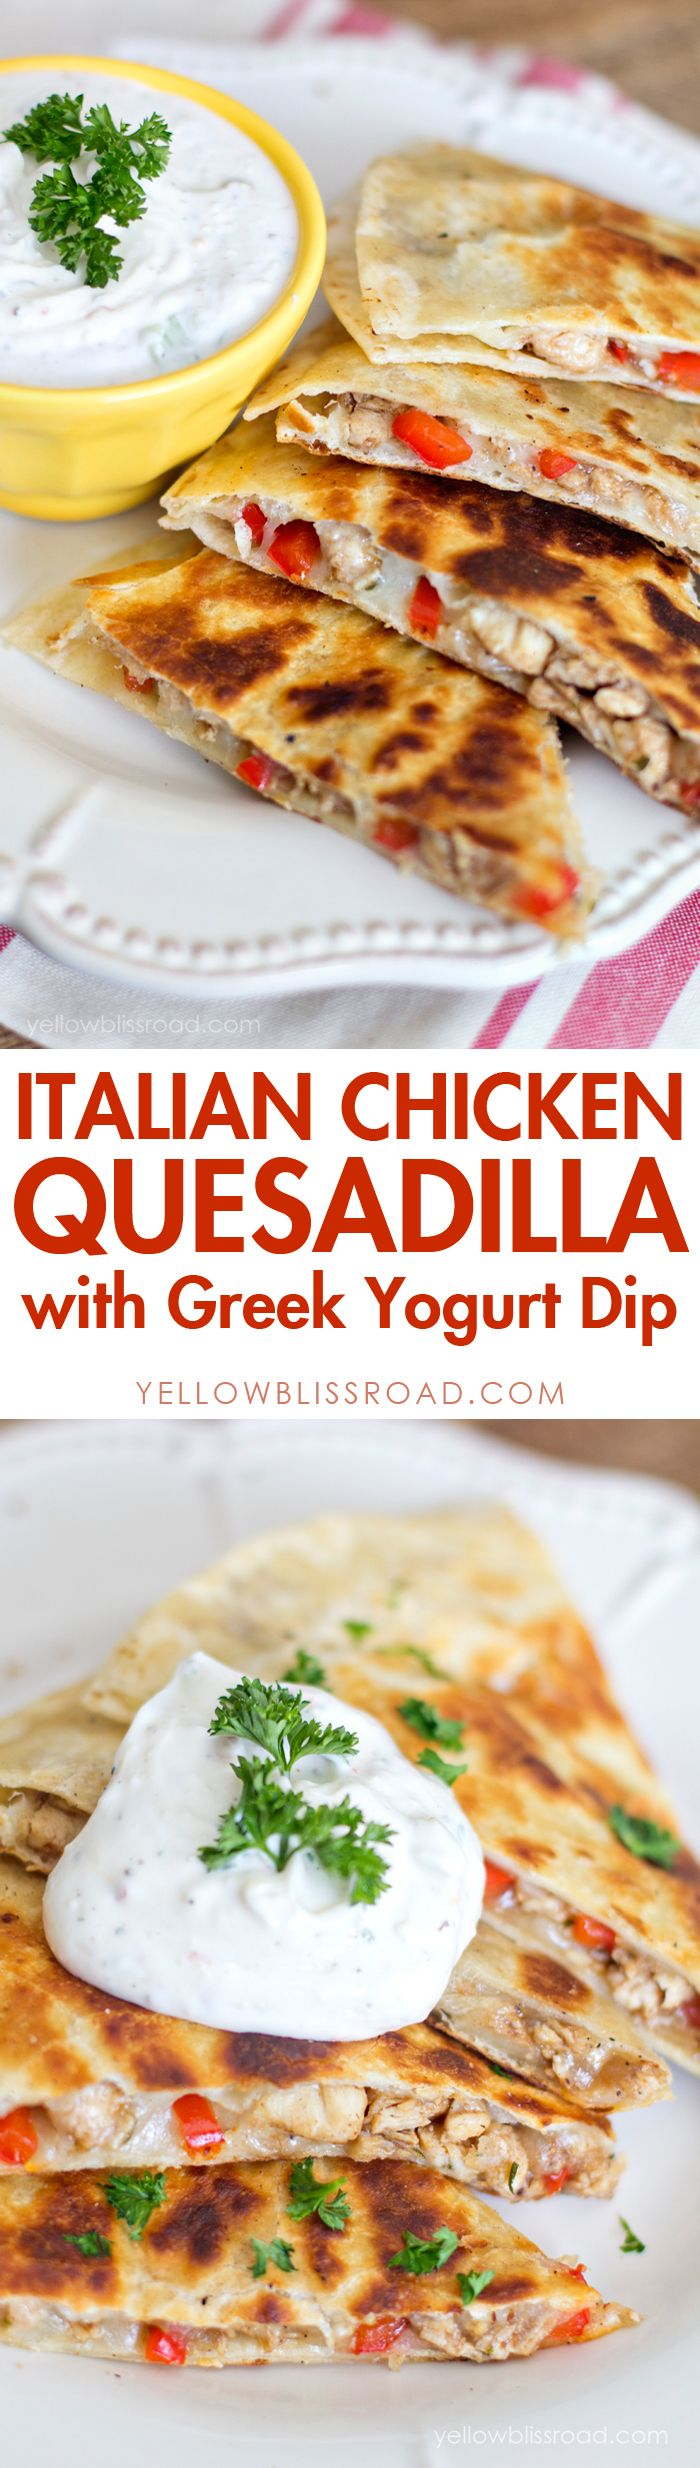 Italian Chicken Quesadillas with Greek Yogurt Dip #ad @sargentocheese #ChoppedatHome